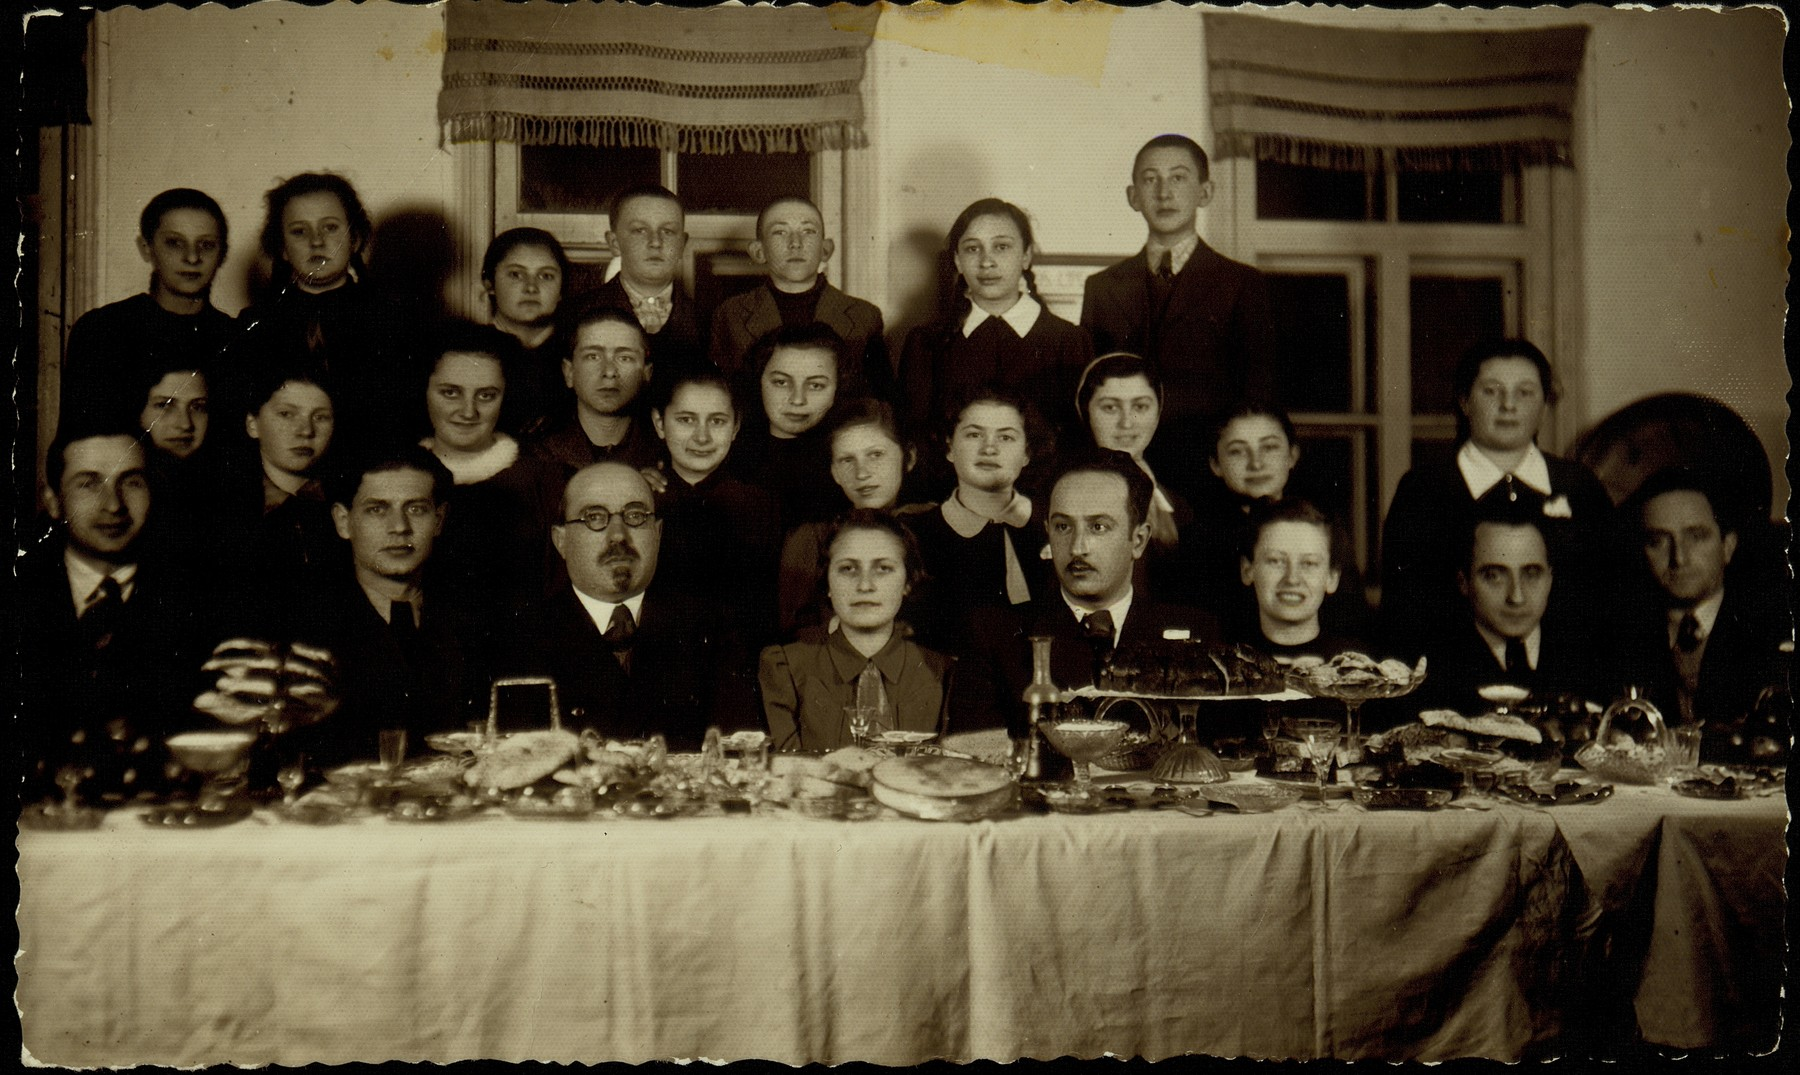 Hayya Shlanski celebrates her impending immigration to America at a party in her honor.  Teachers sitting (from left to right). Gabi, Perski (uncle of Israel's former  Prime Minister Shimon Peres), Botwinik, student Hayya Shlanski, new Jewish Lithuanian principal of school, name unknown, Kahn ( lived in Bastunski house), Patashnik. Top row (from right to left): Avigdor Katz, Devorah, Avremeke Schmidt, unknown, Rachel Koppelman. Second row (fifth from left) is Sheinele Dwilanski. Standing to the far right in the second row is Etke Wilenski.